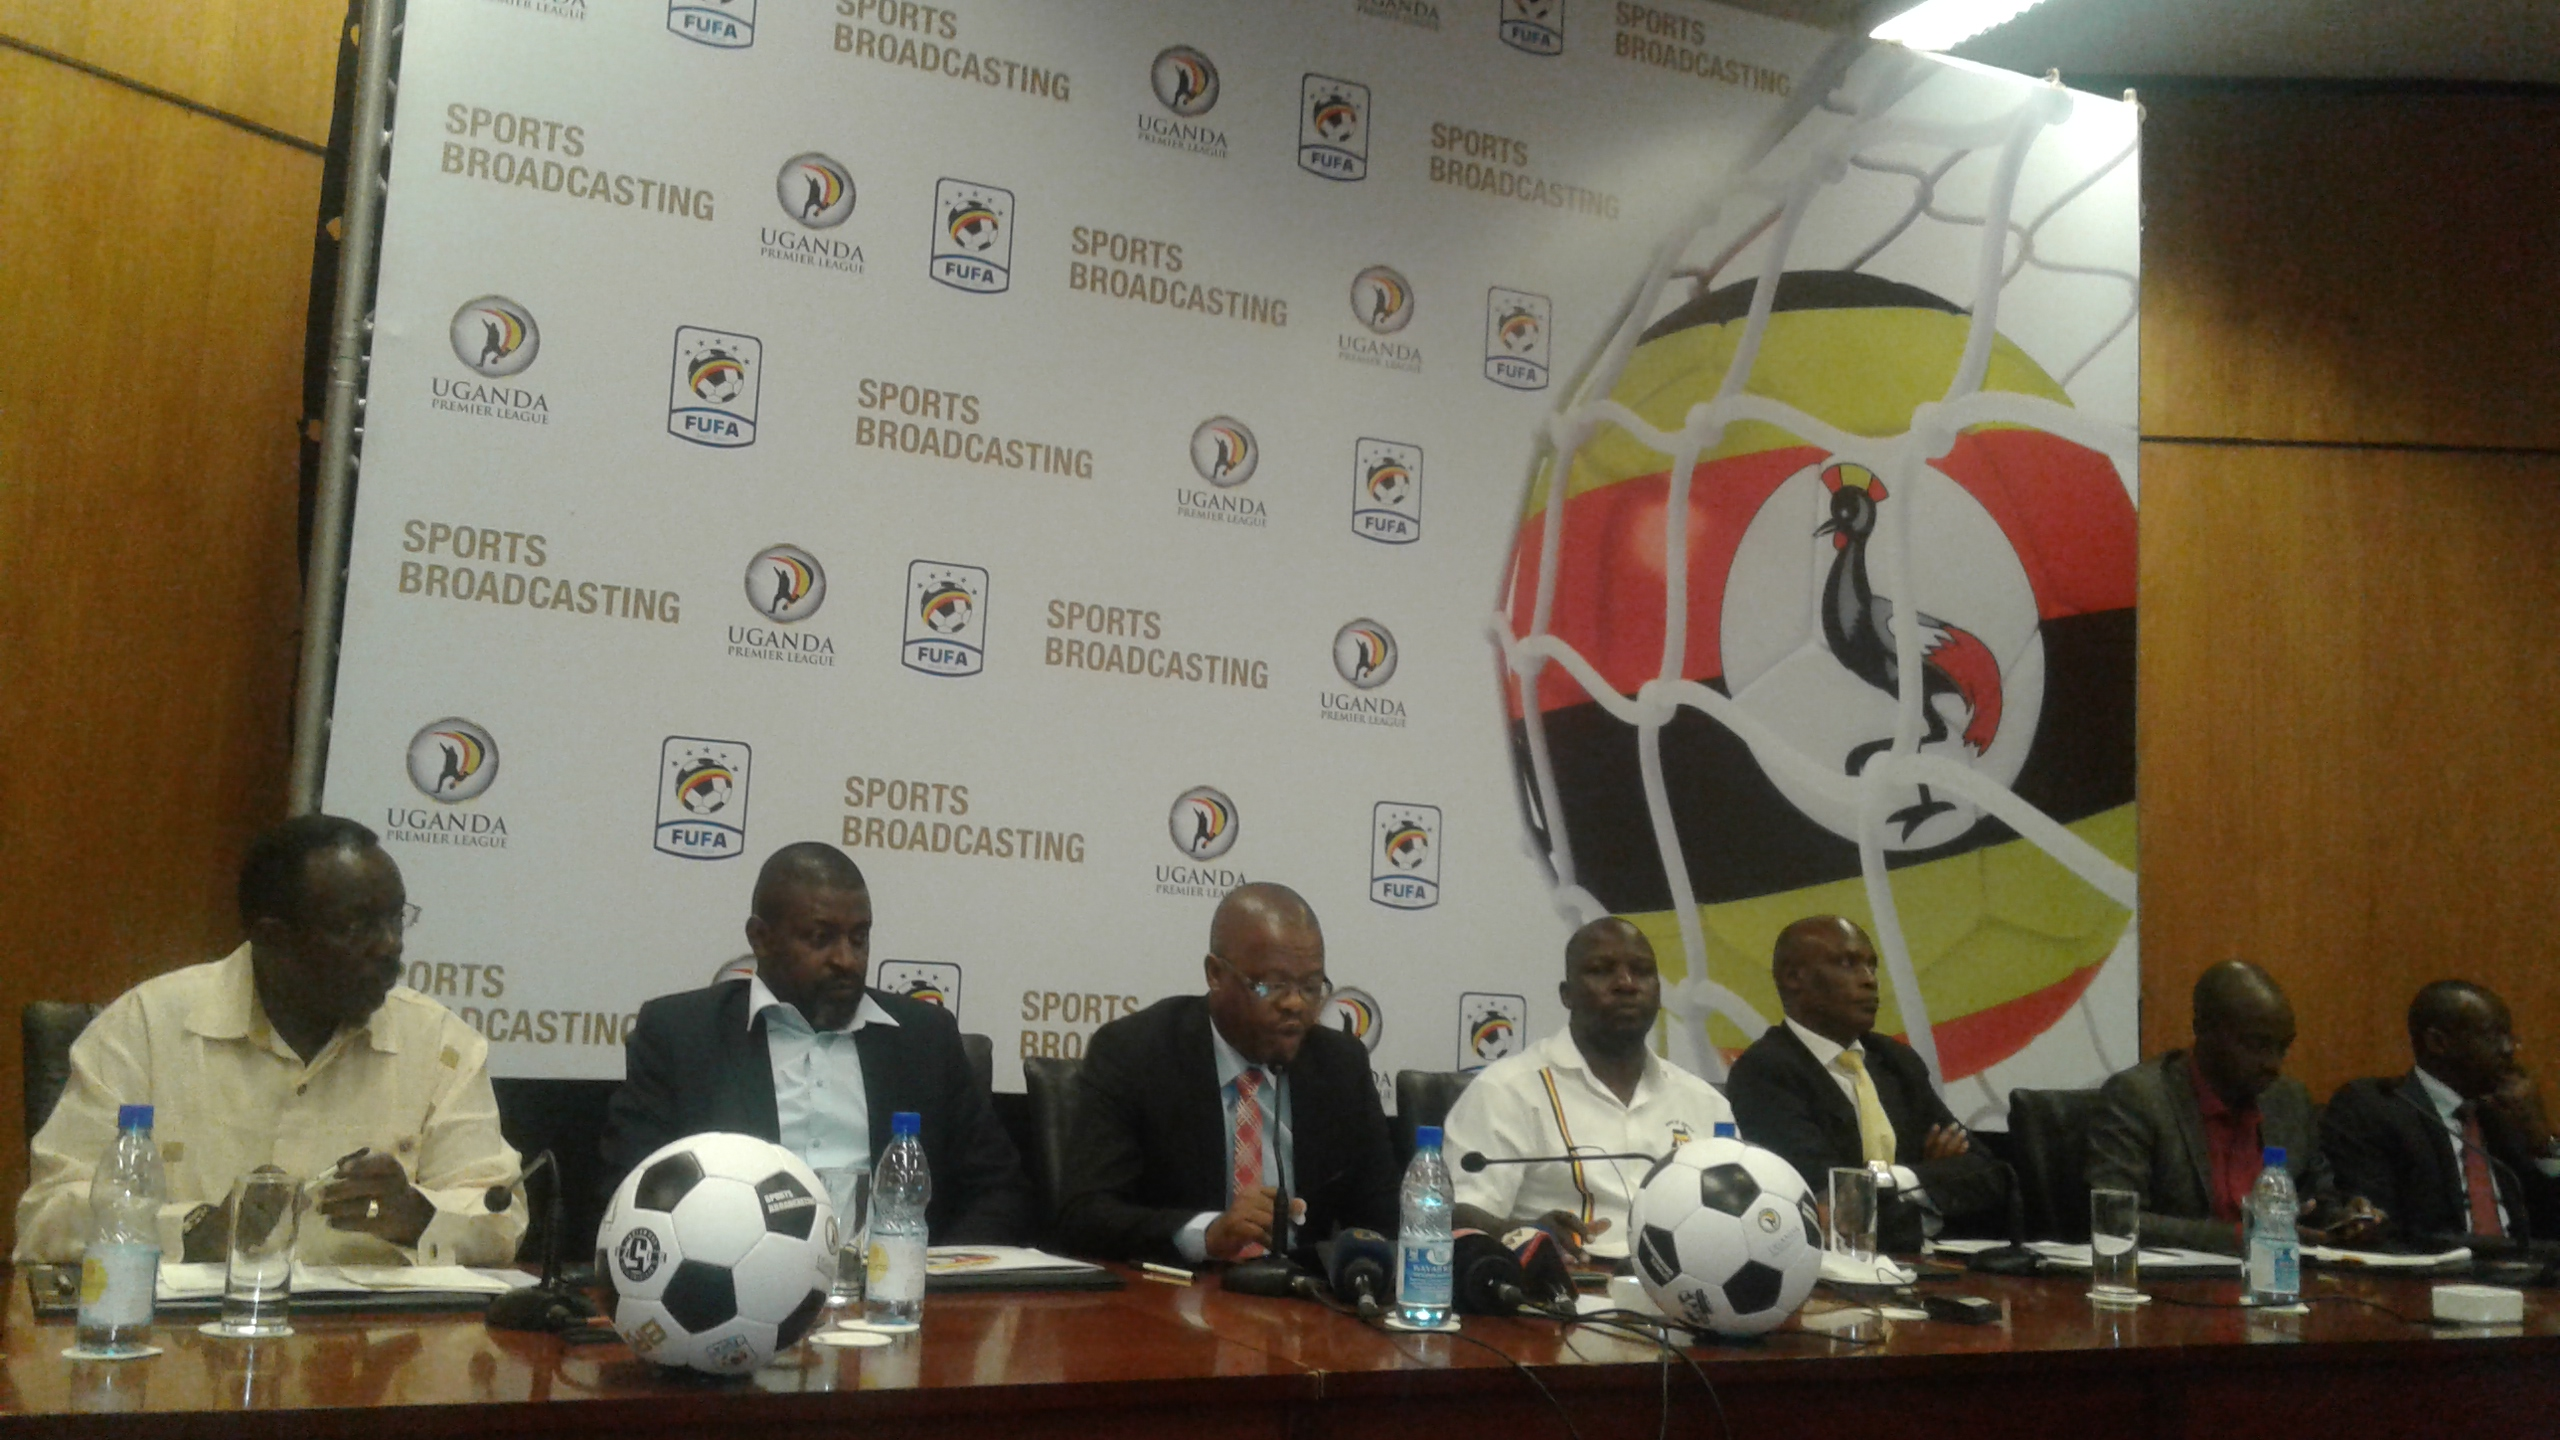 FUFA and Sports Broadcasting Limited enter into $3million partnership